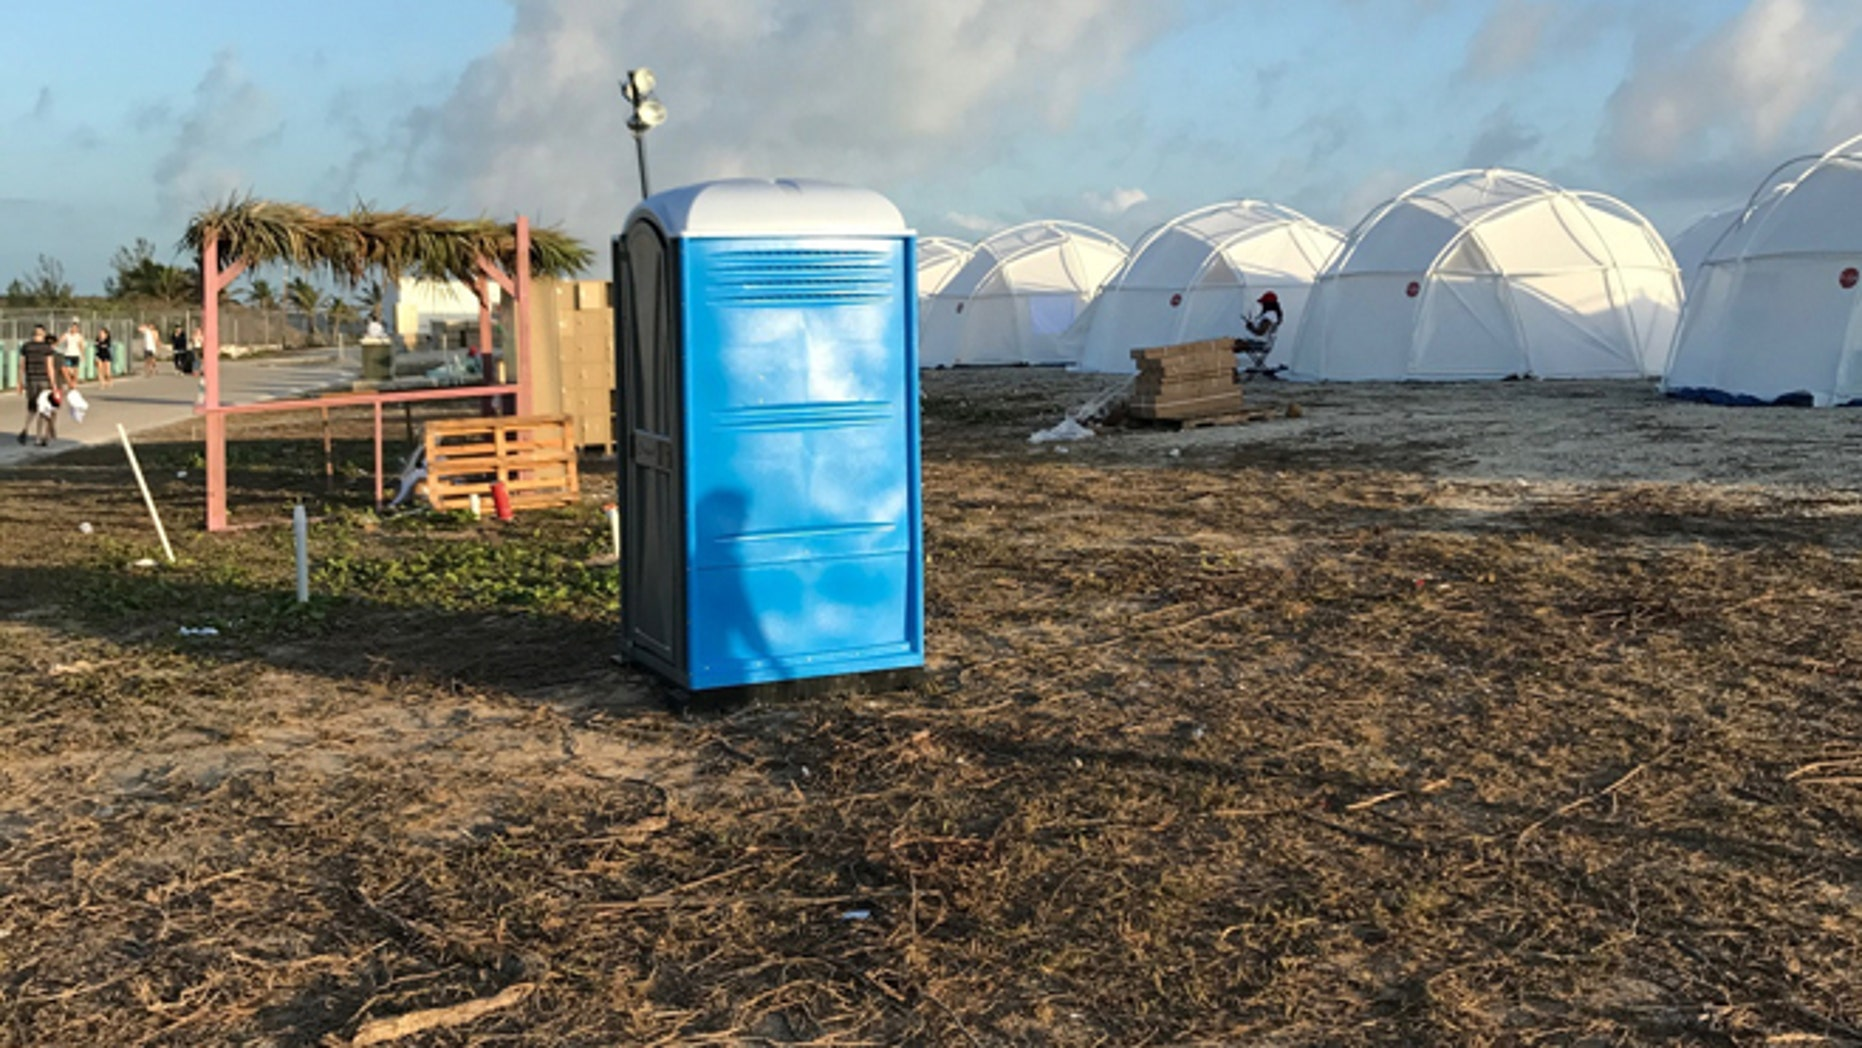 Tents and a portable toilet set up for attendees for the now-cancelled Fyre Festival in the Bahamas.